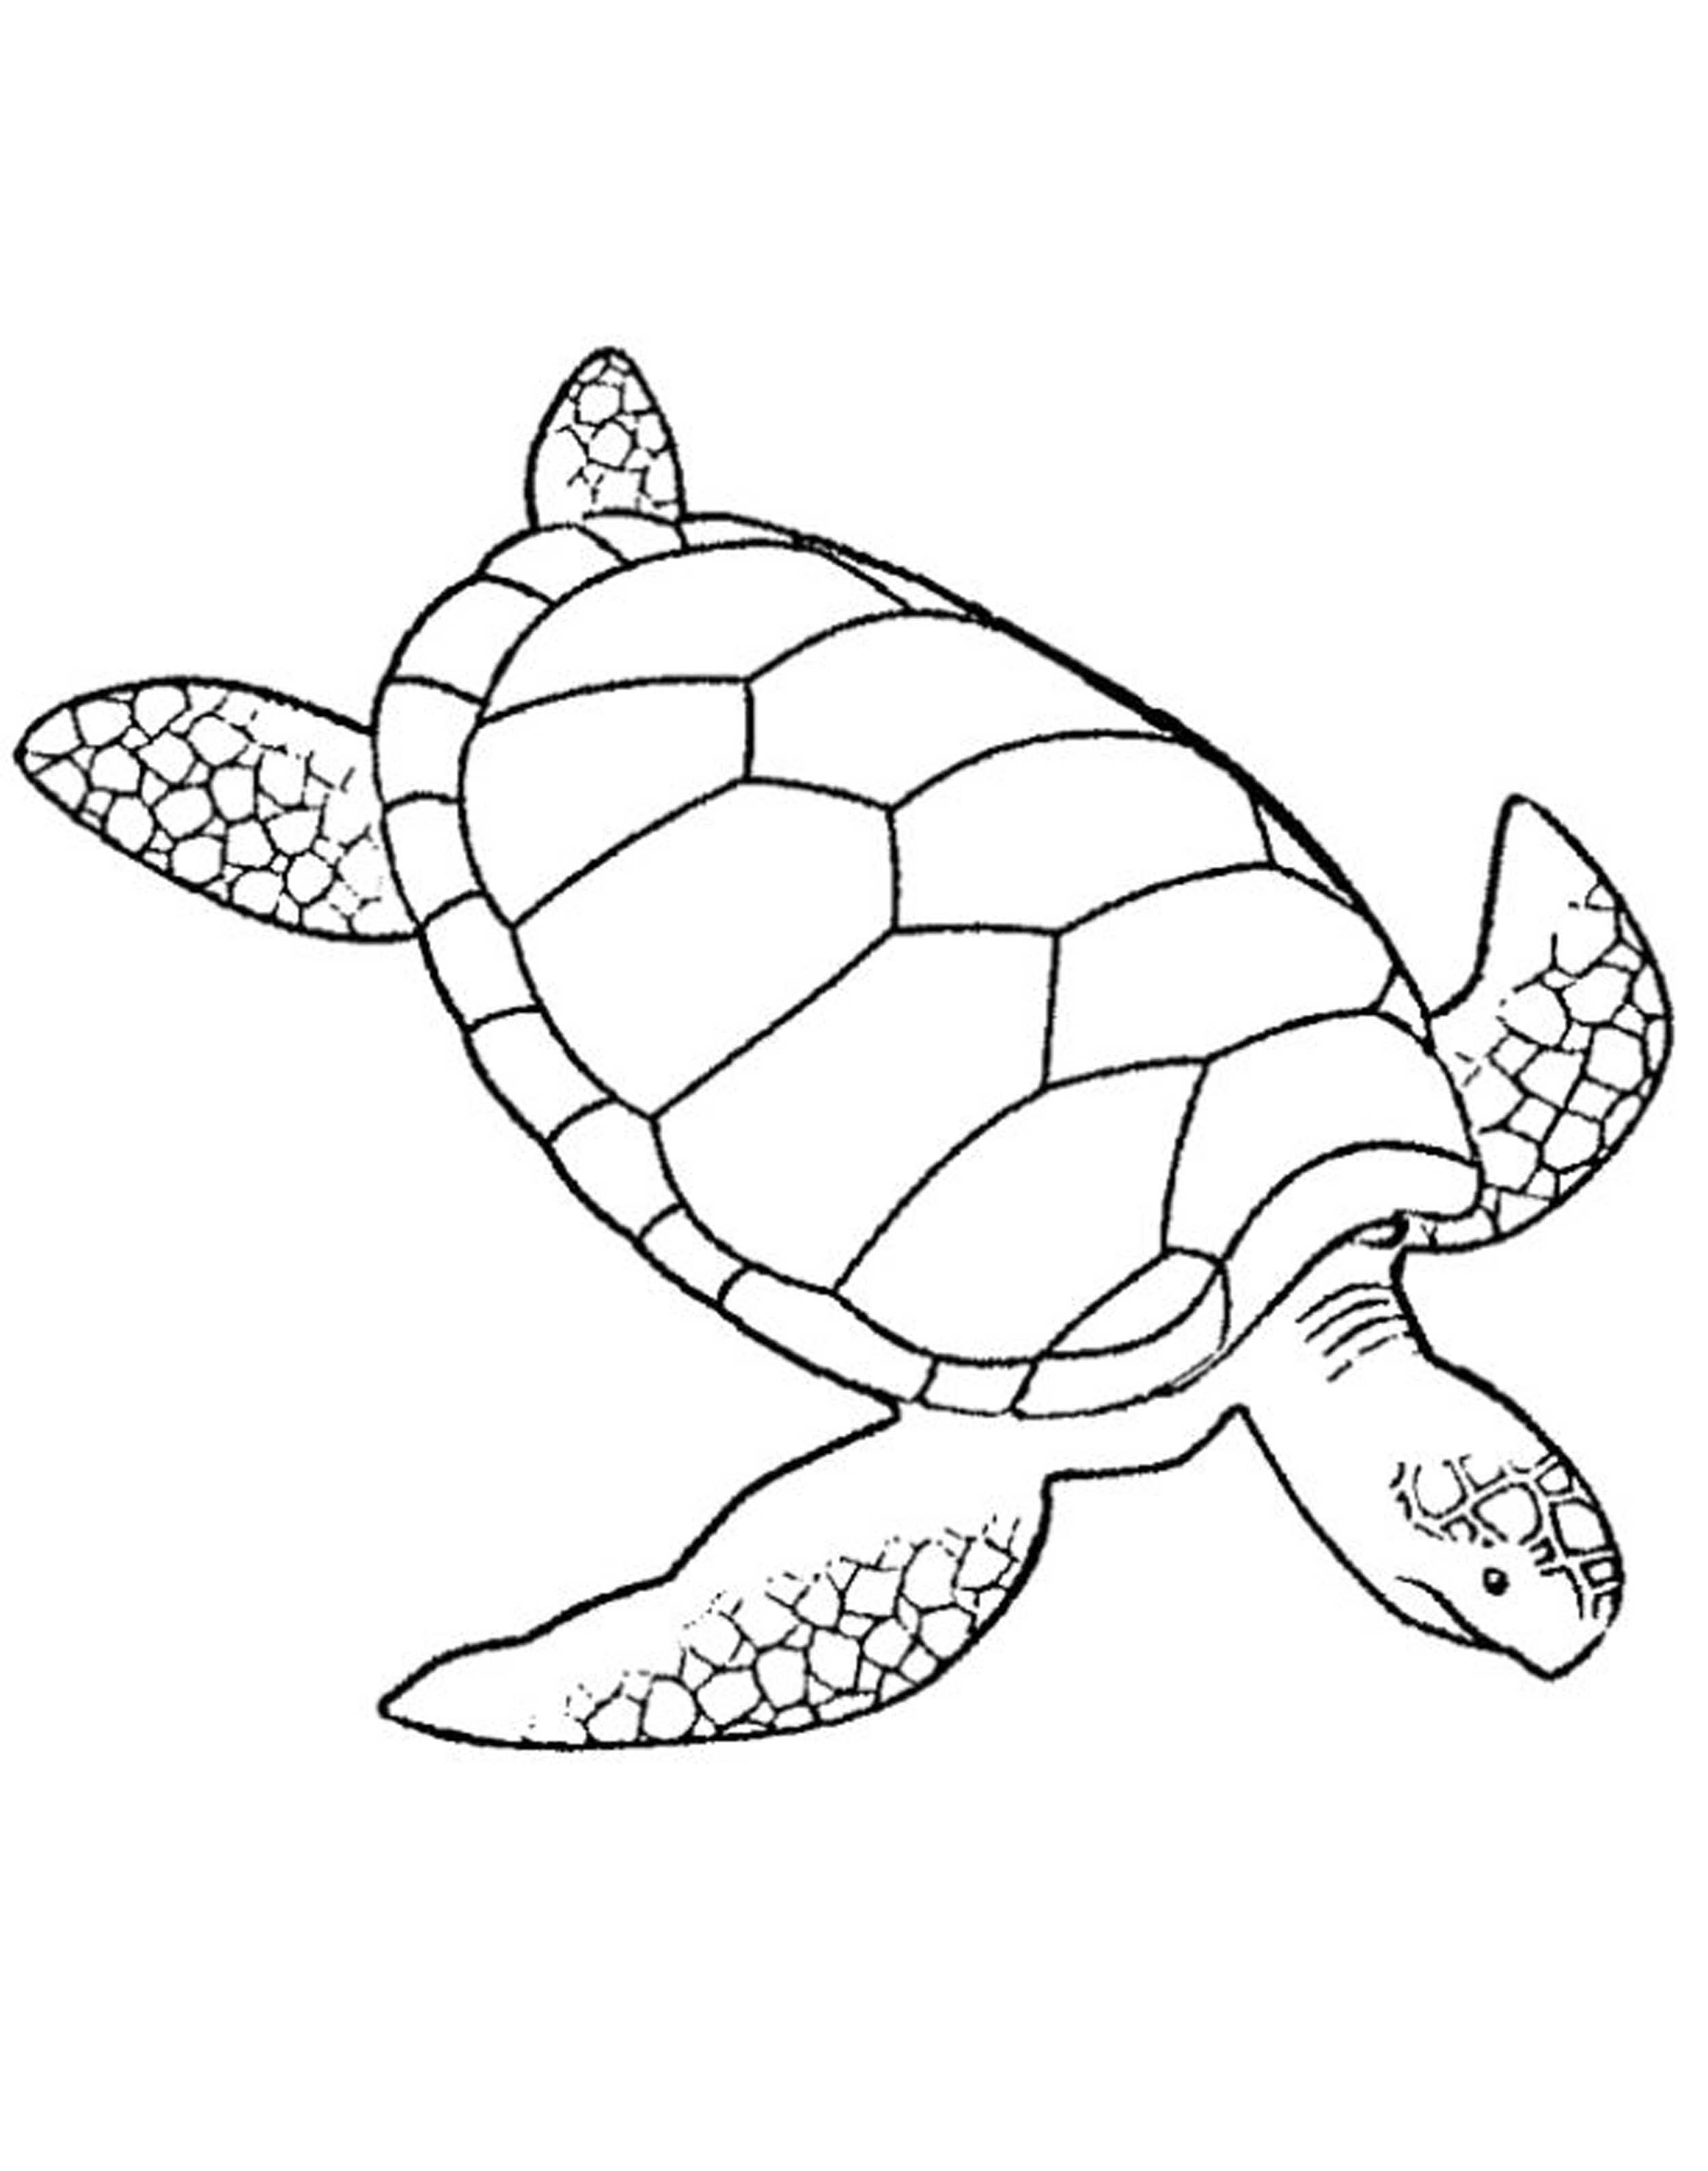 coloring page turtle turtles free to color for kids turtles kids coloring pages page turtle coloring